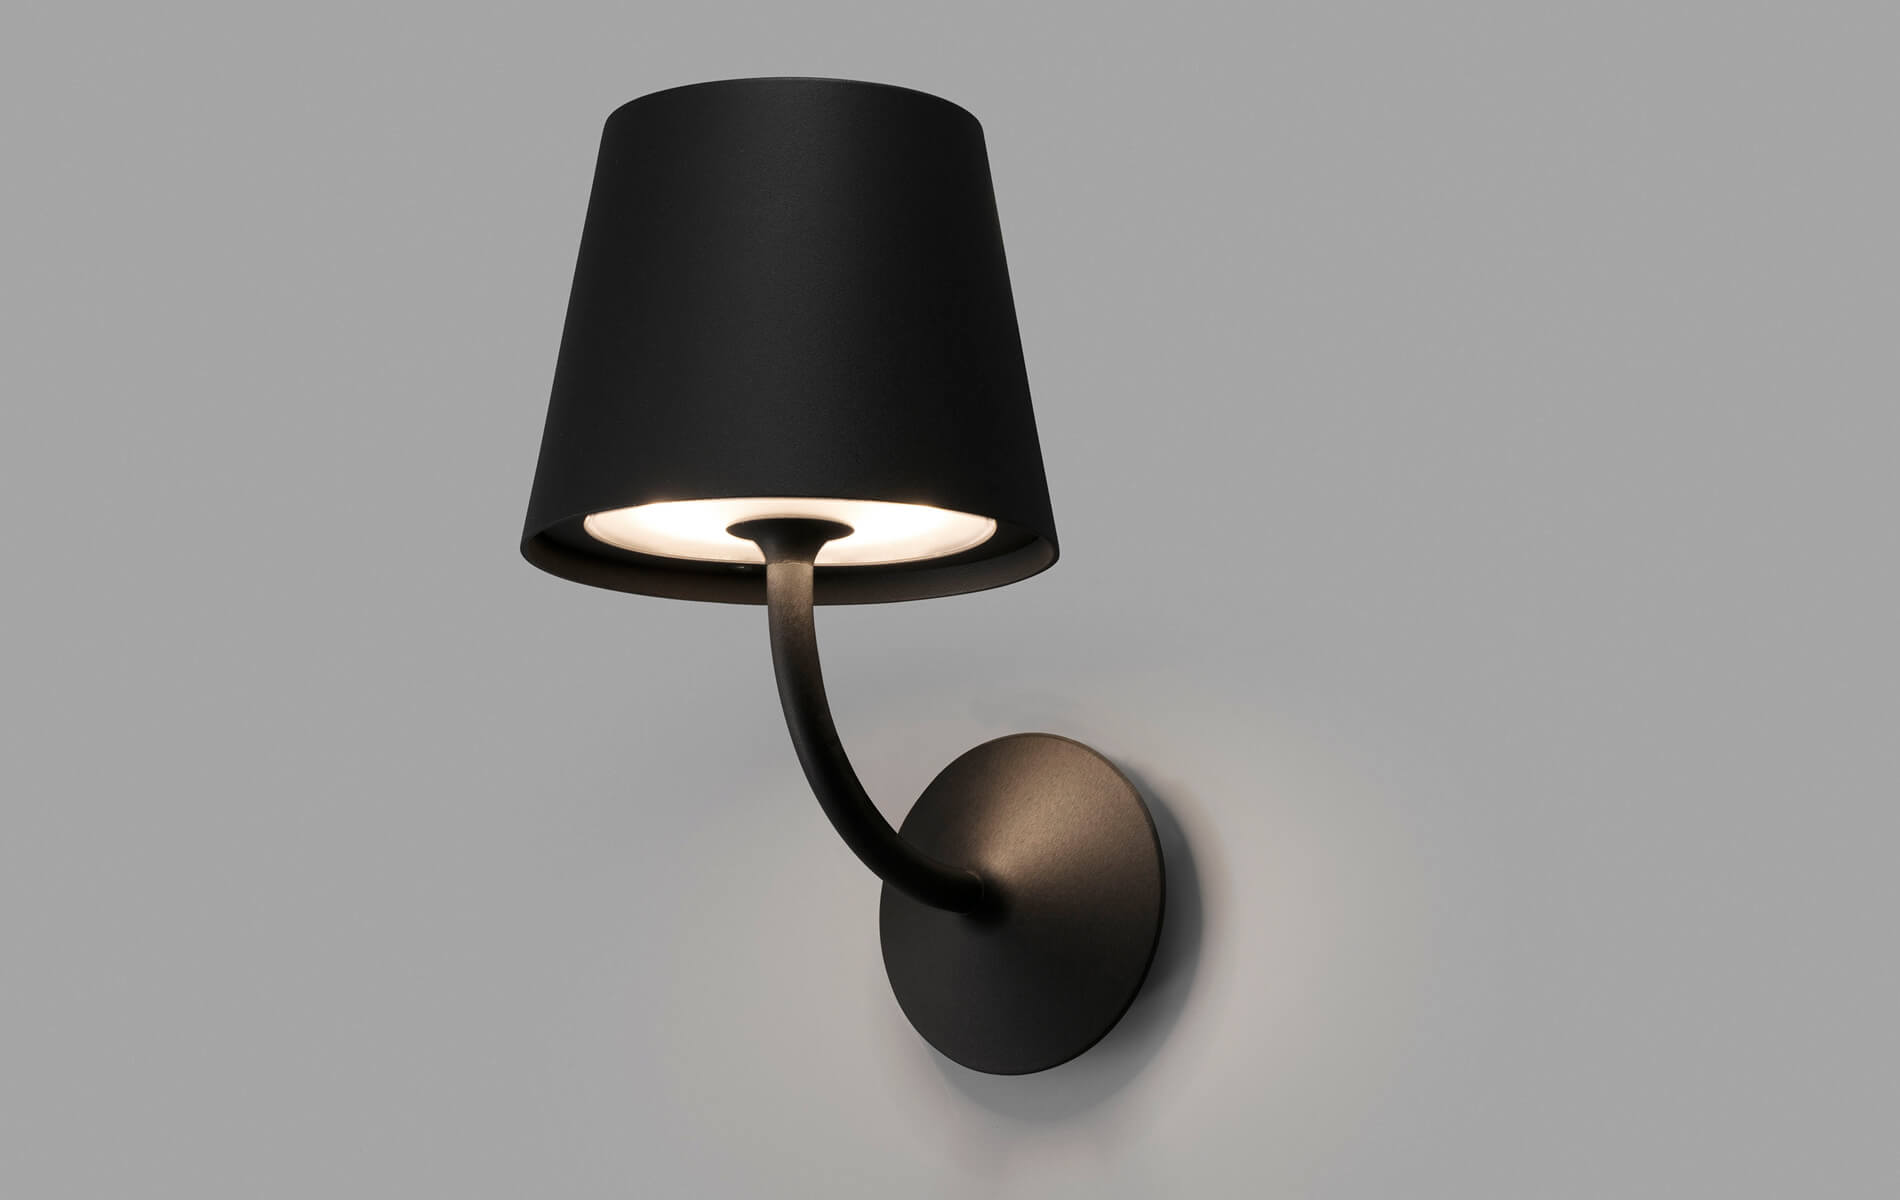 More information of Faro TOC wall lamp